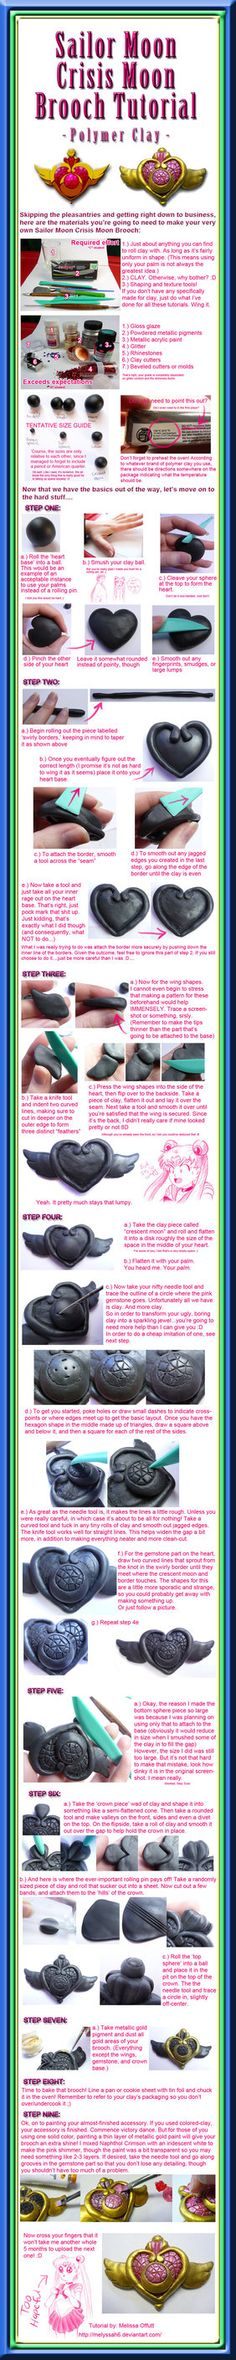 Sailor Moon Crisis Moon Brooch Tutorial by ~Melyssah6 on deviantART